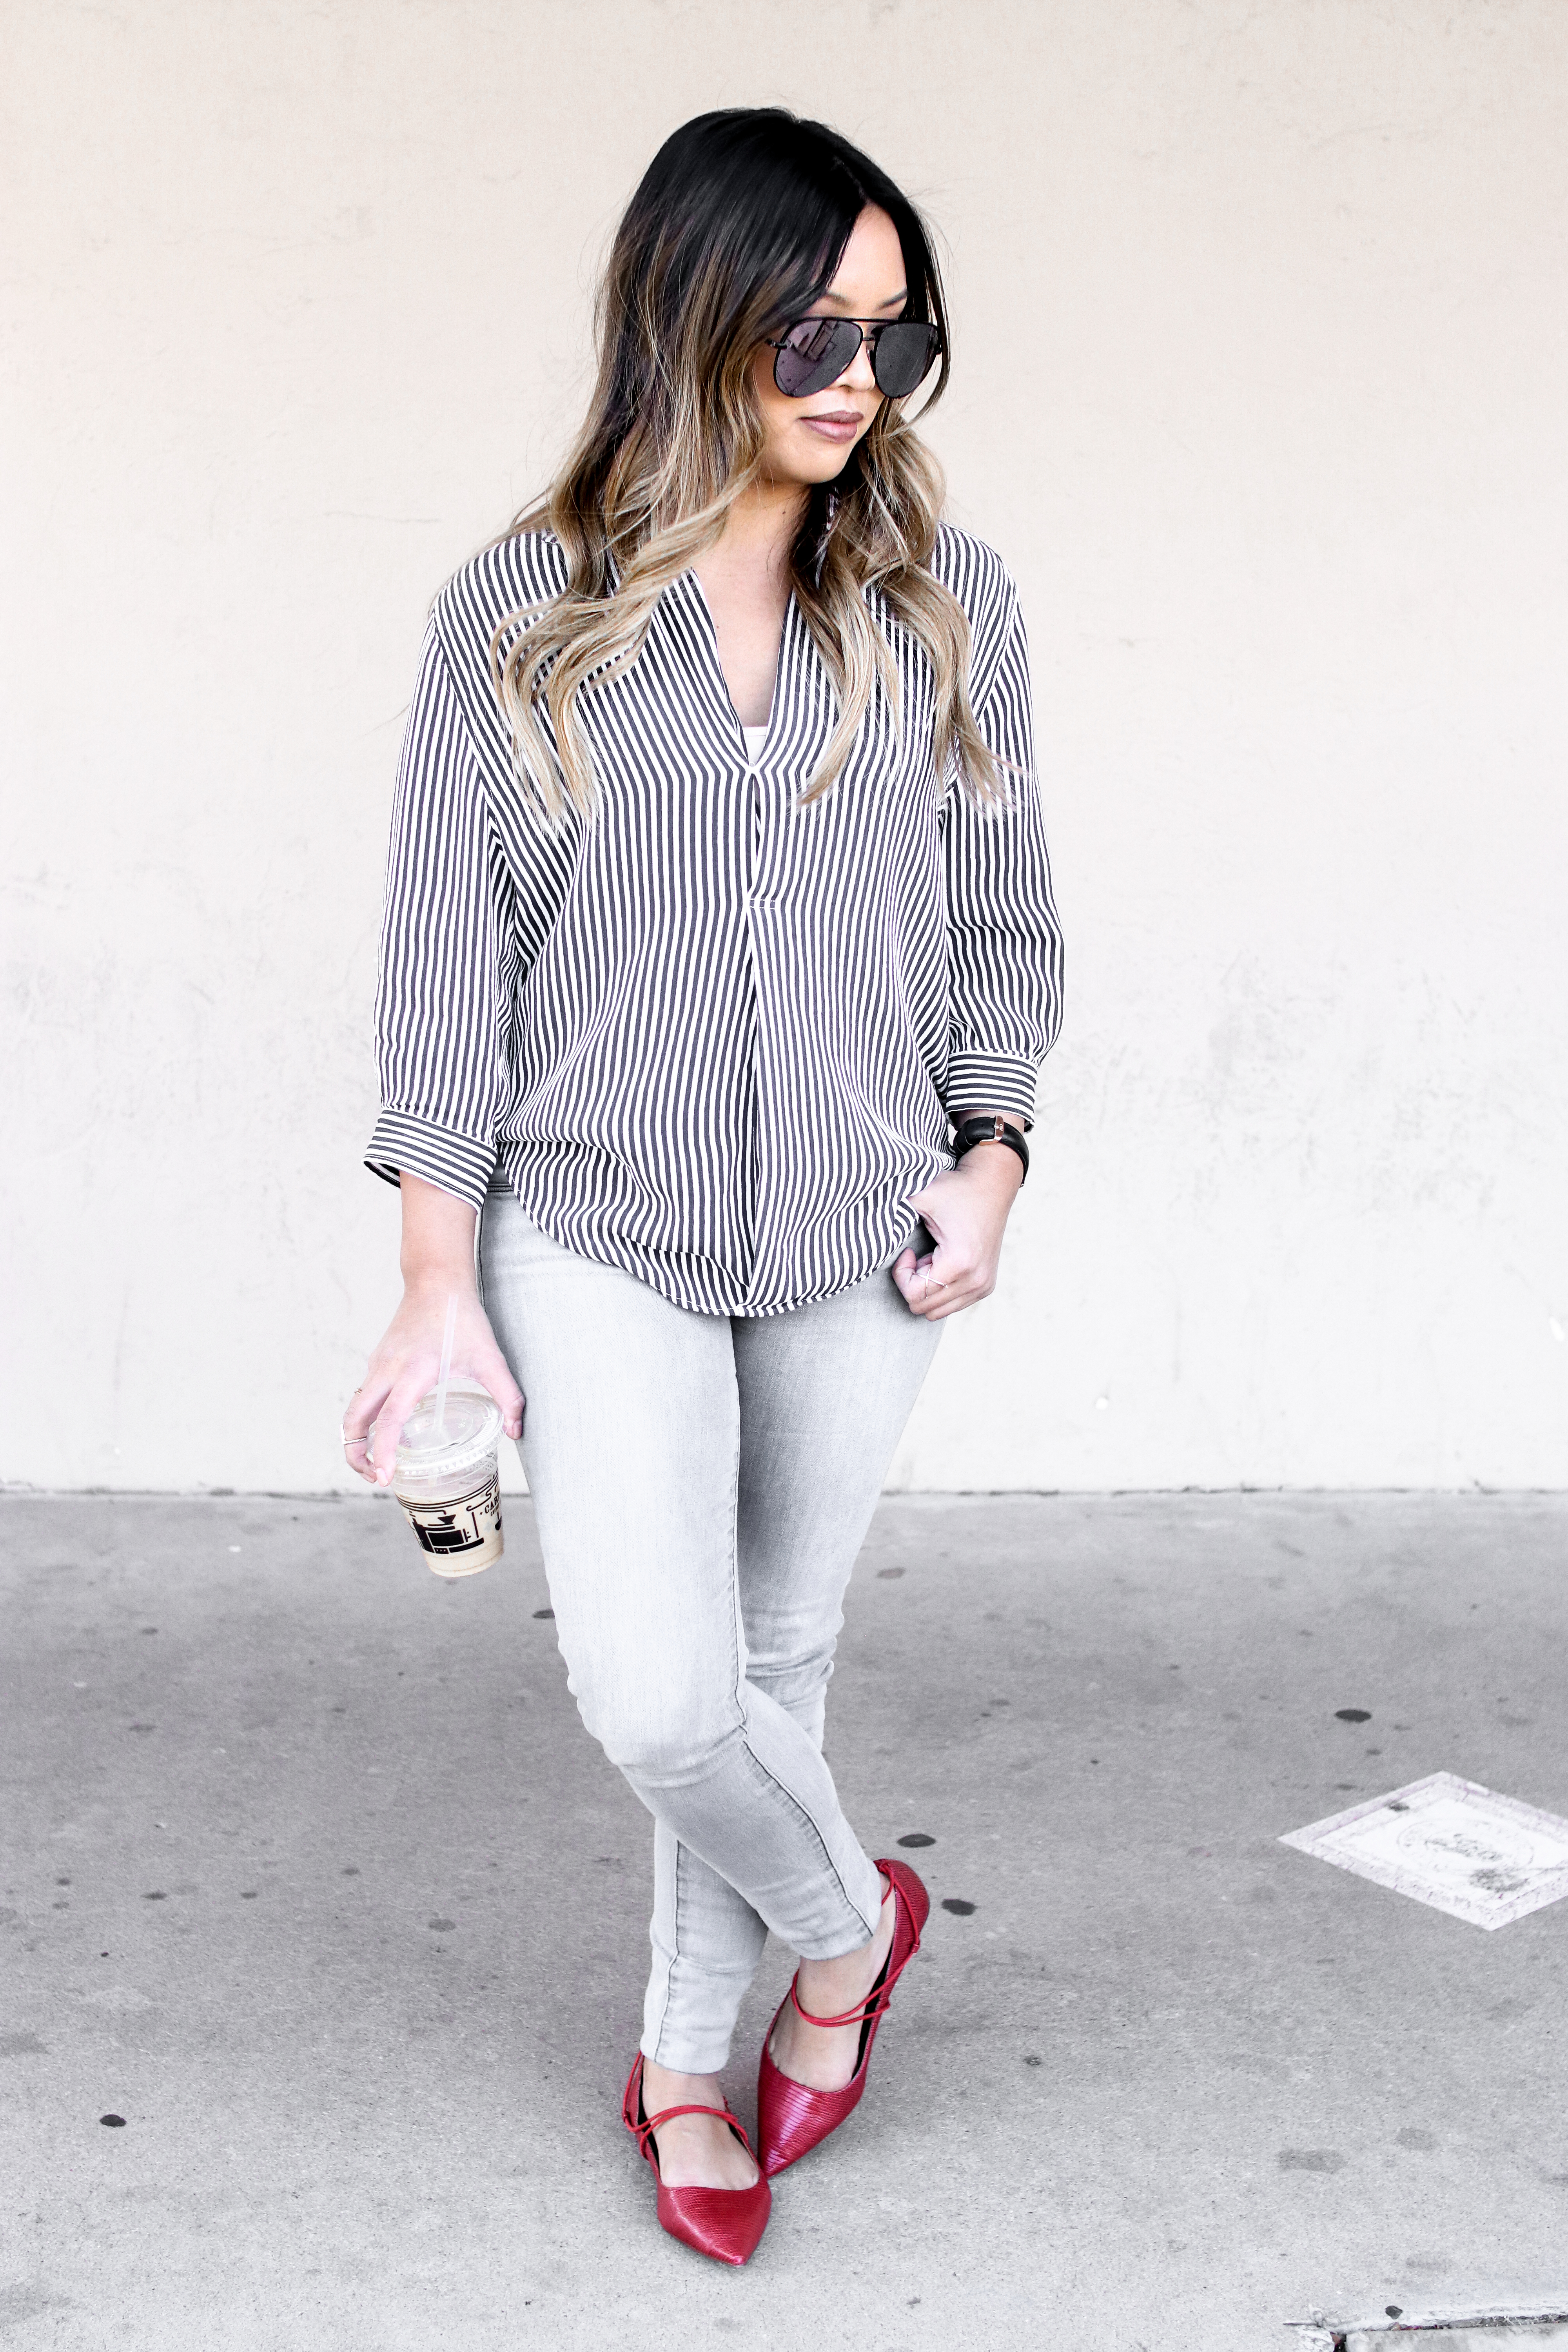 Old Town Scottsdale Weekend Stripe Blouse Zara Red Lace Up Flats Outfit | The Beauty Vanity